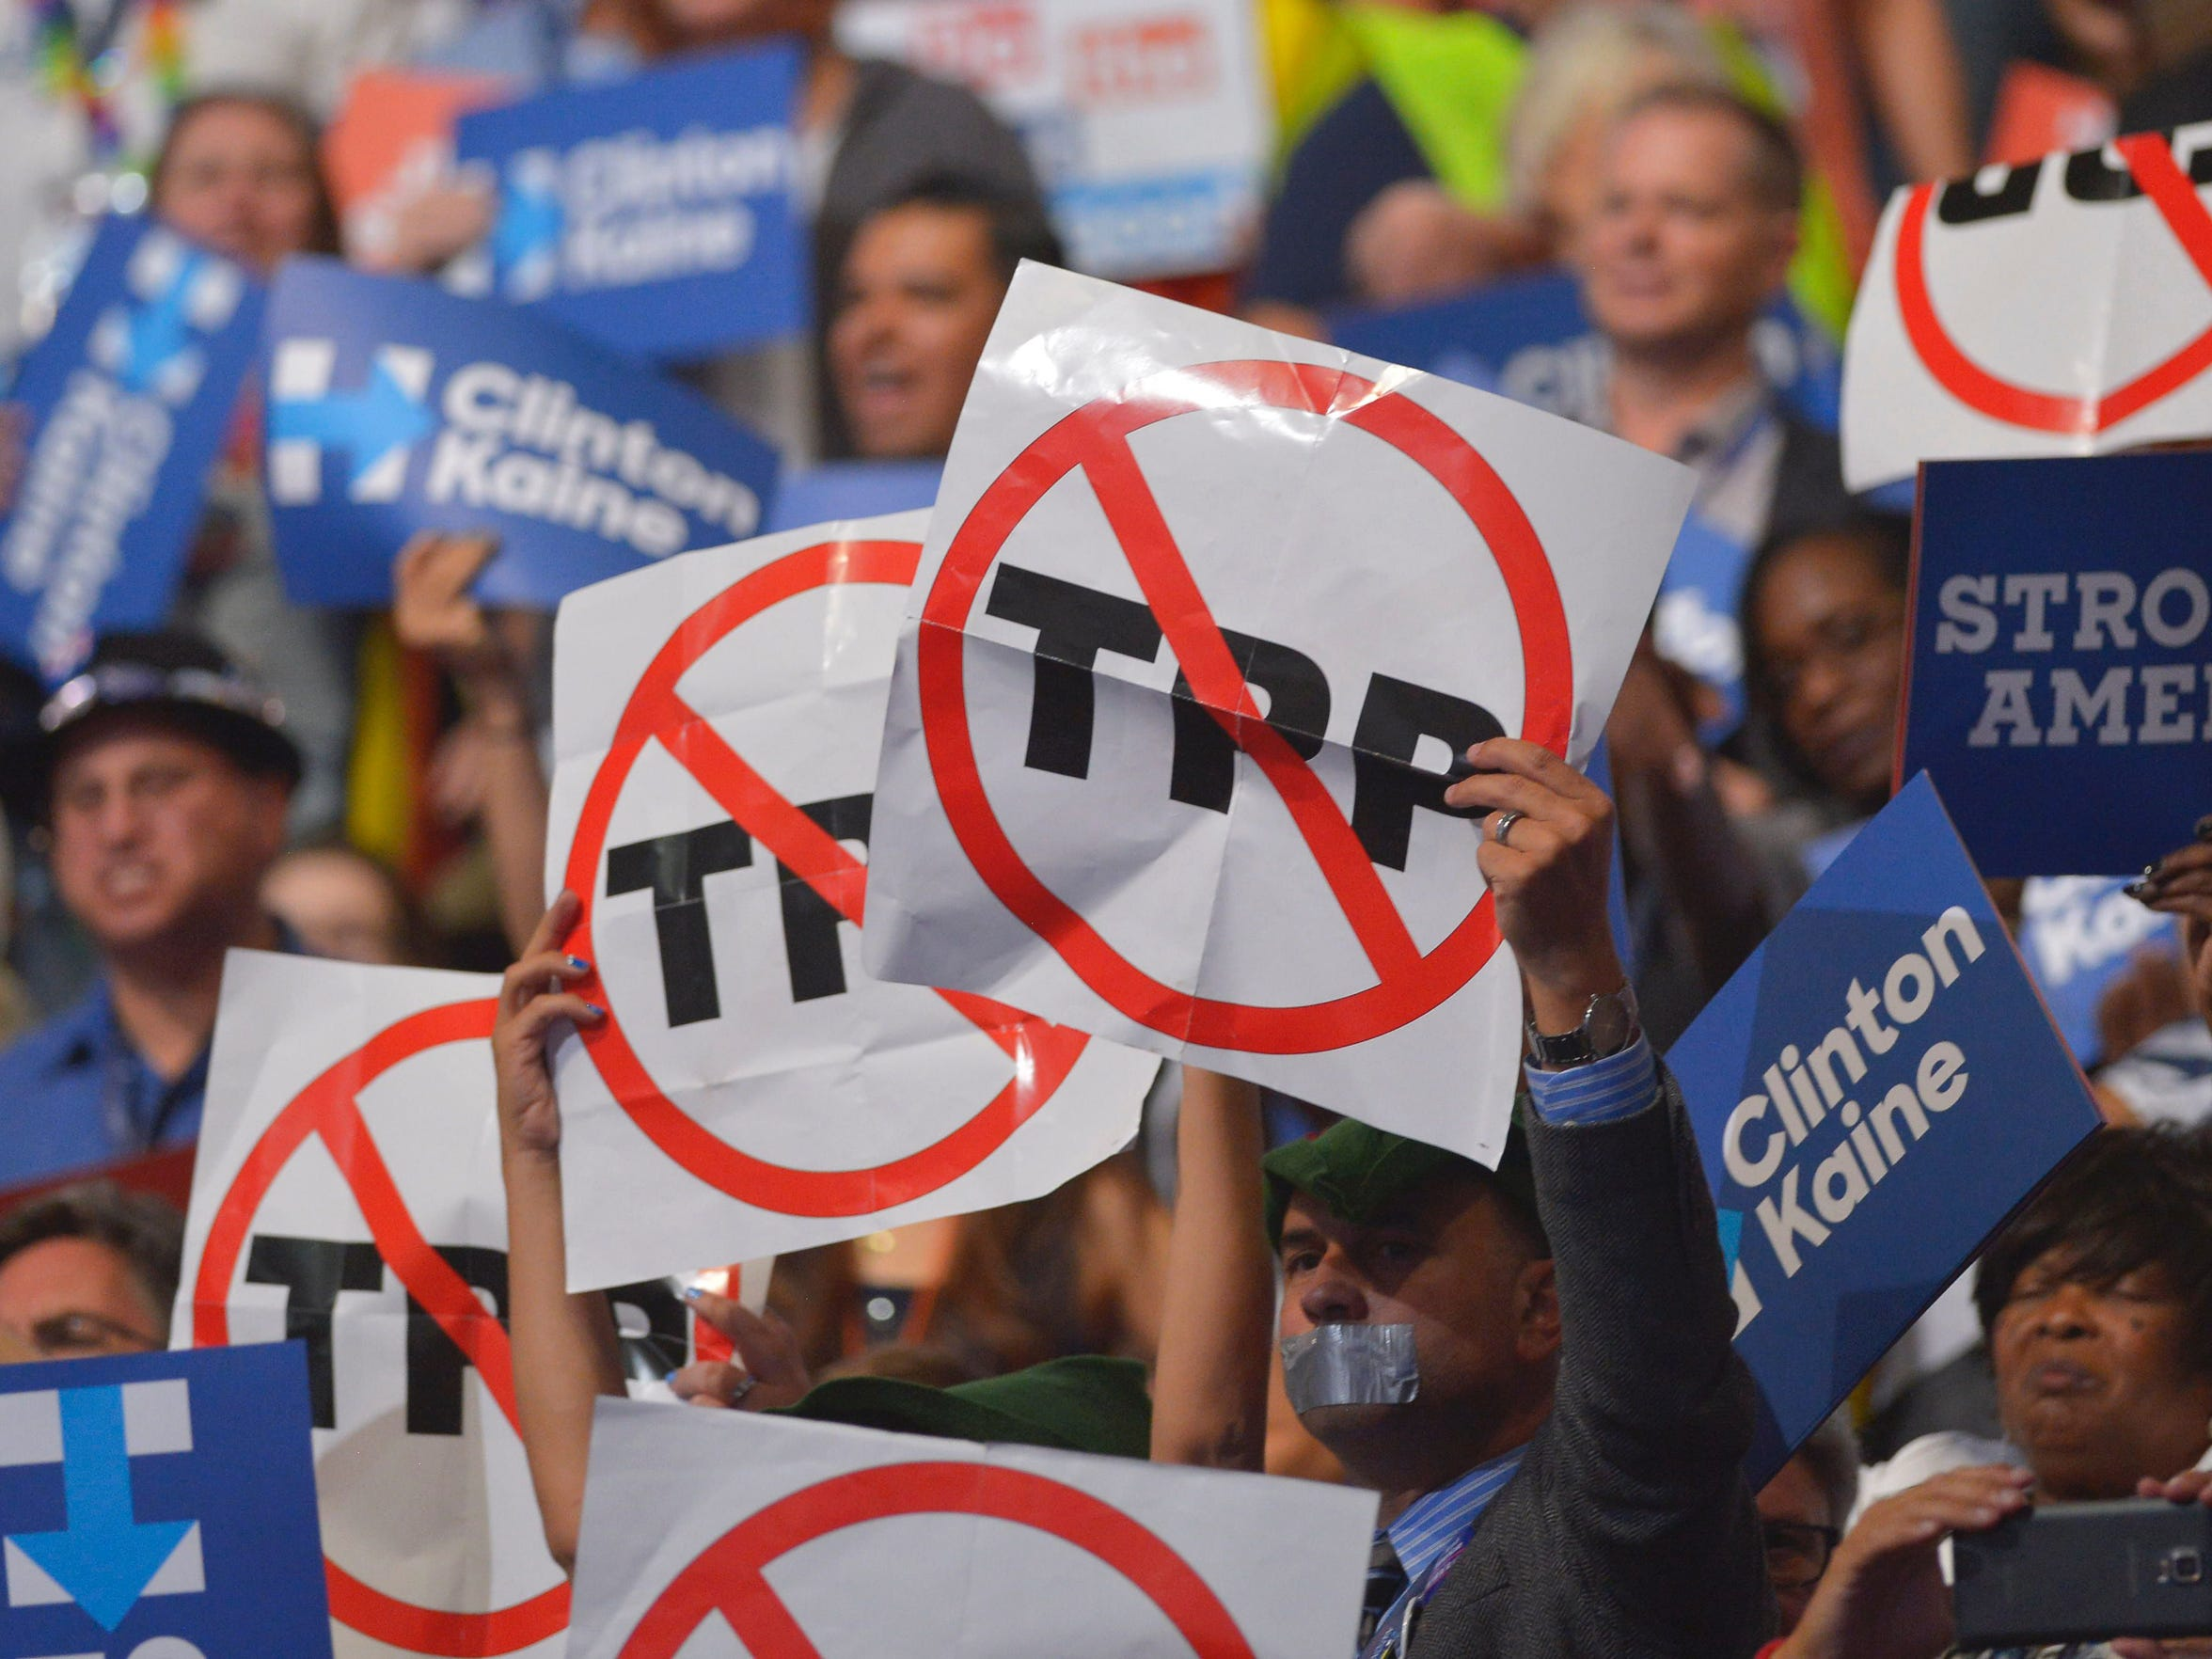 People hold signs against the Trans Pacific Partnership on Day 3 of the Democratic National Convention at the Wells Fargo Center, July 27, 2016, in Philadelphia, Penn.